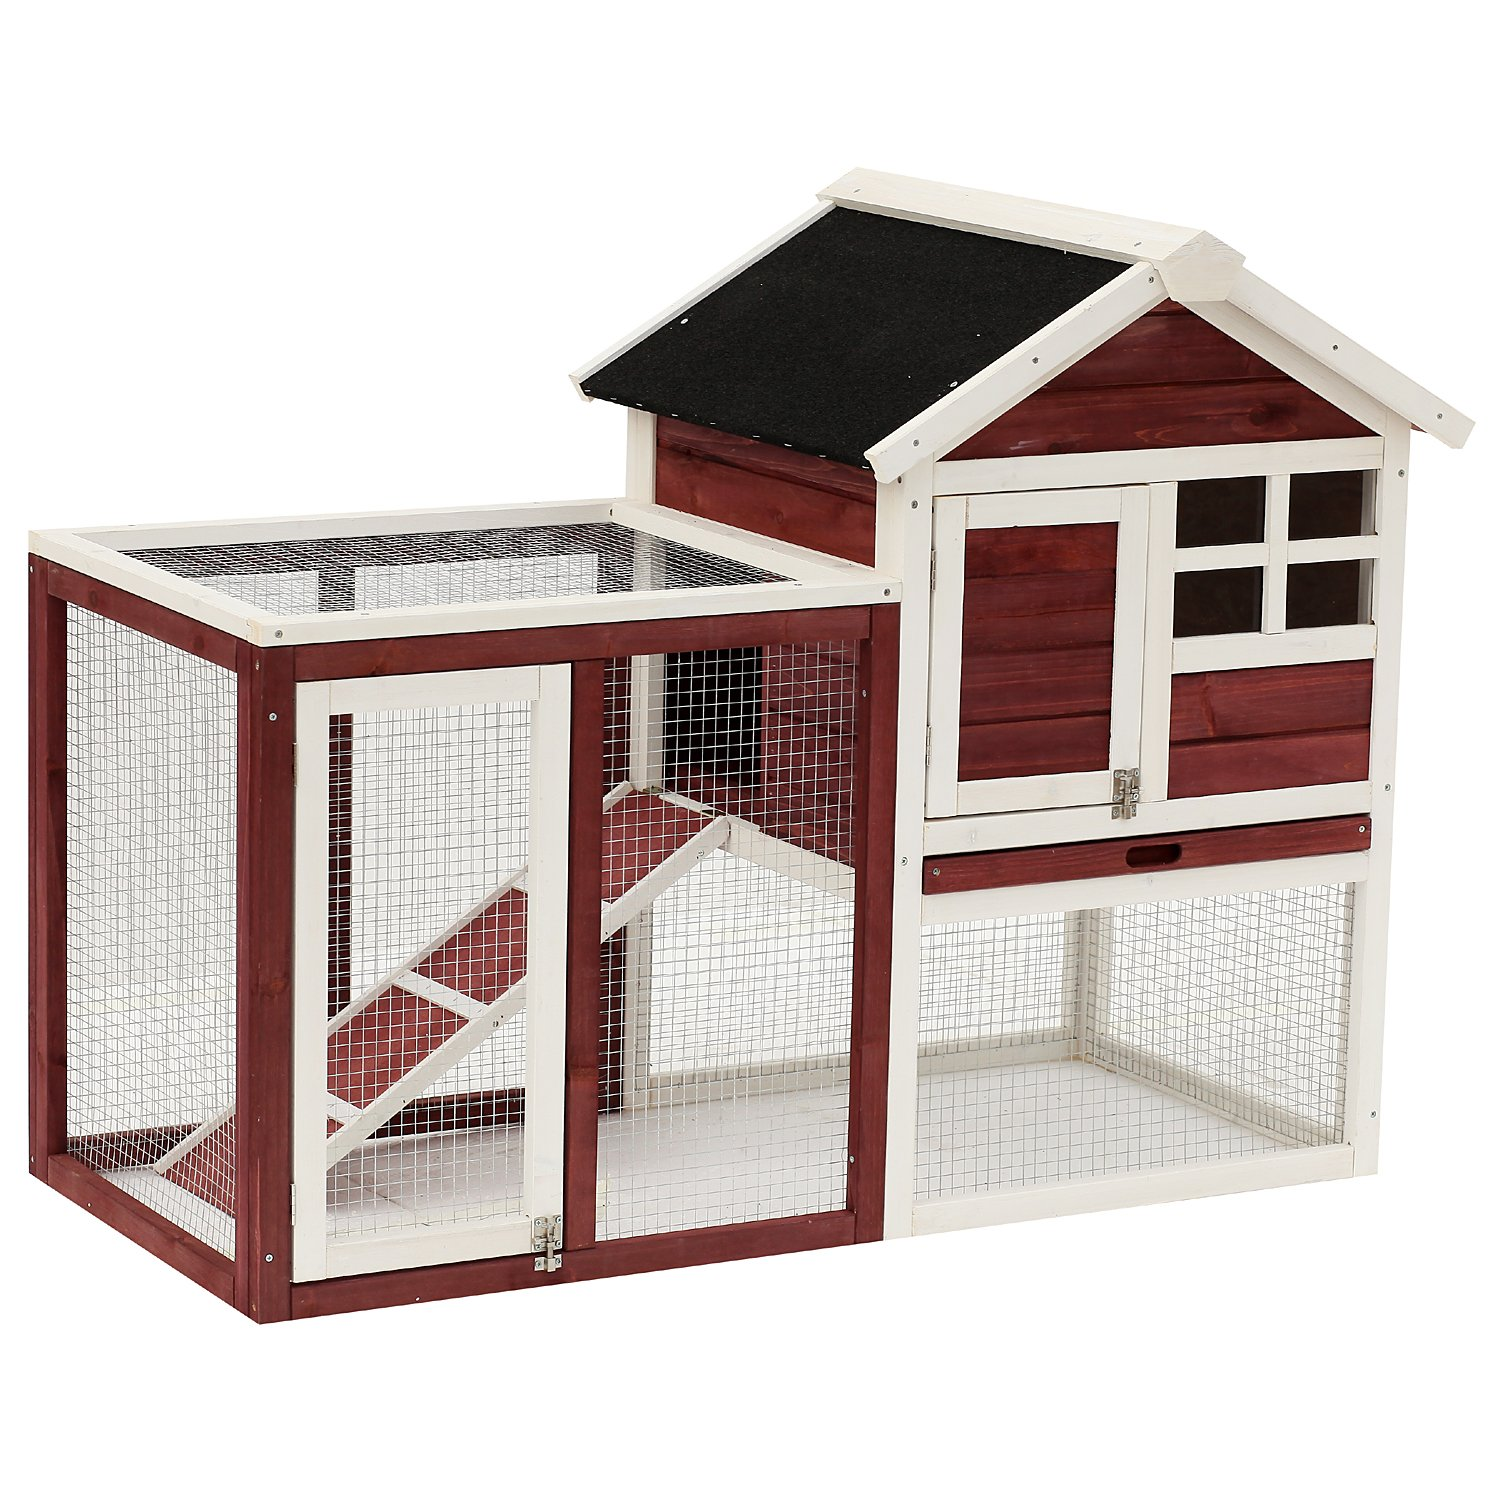 PawHut 48'' Weatherproof Wooden Rabbit Hutch with Slant Roof and Screened Outdoor Run by PawHut